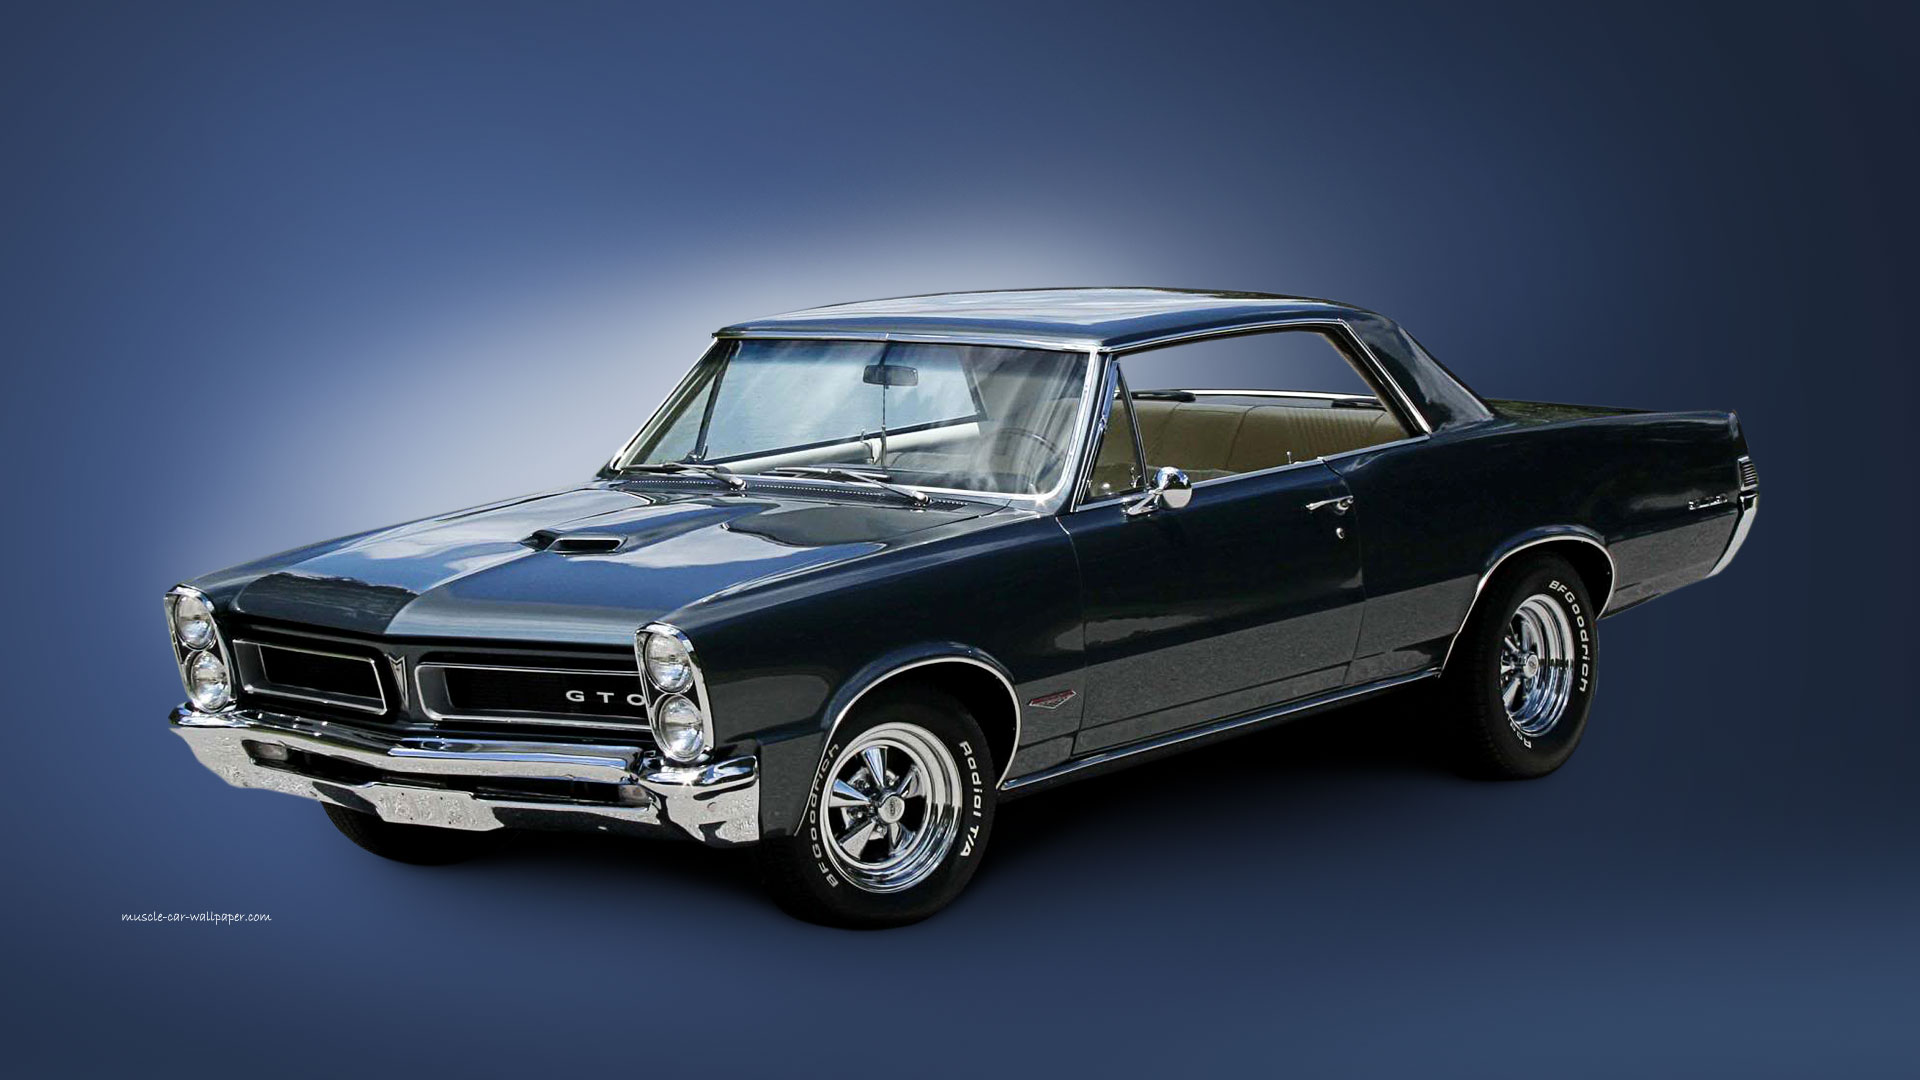 1965 GTO Wallpaper Picture   Muscle Car Wallpaper 1920 02 1920x1080